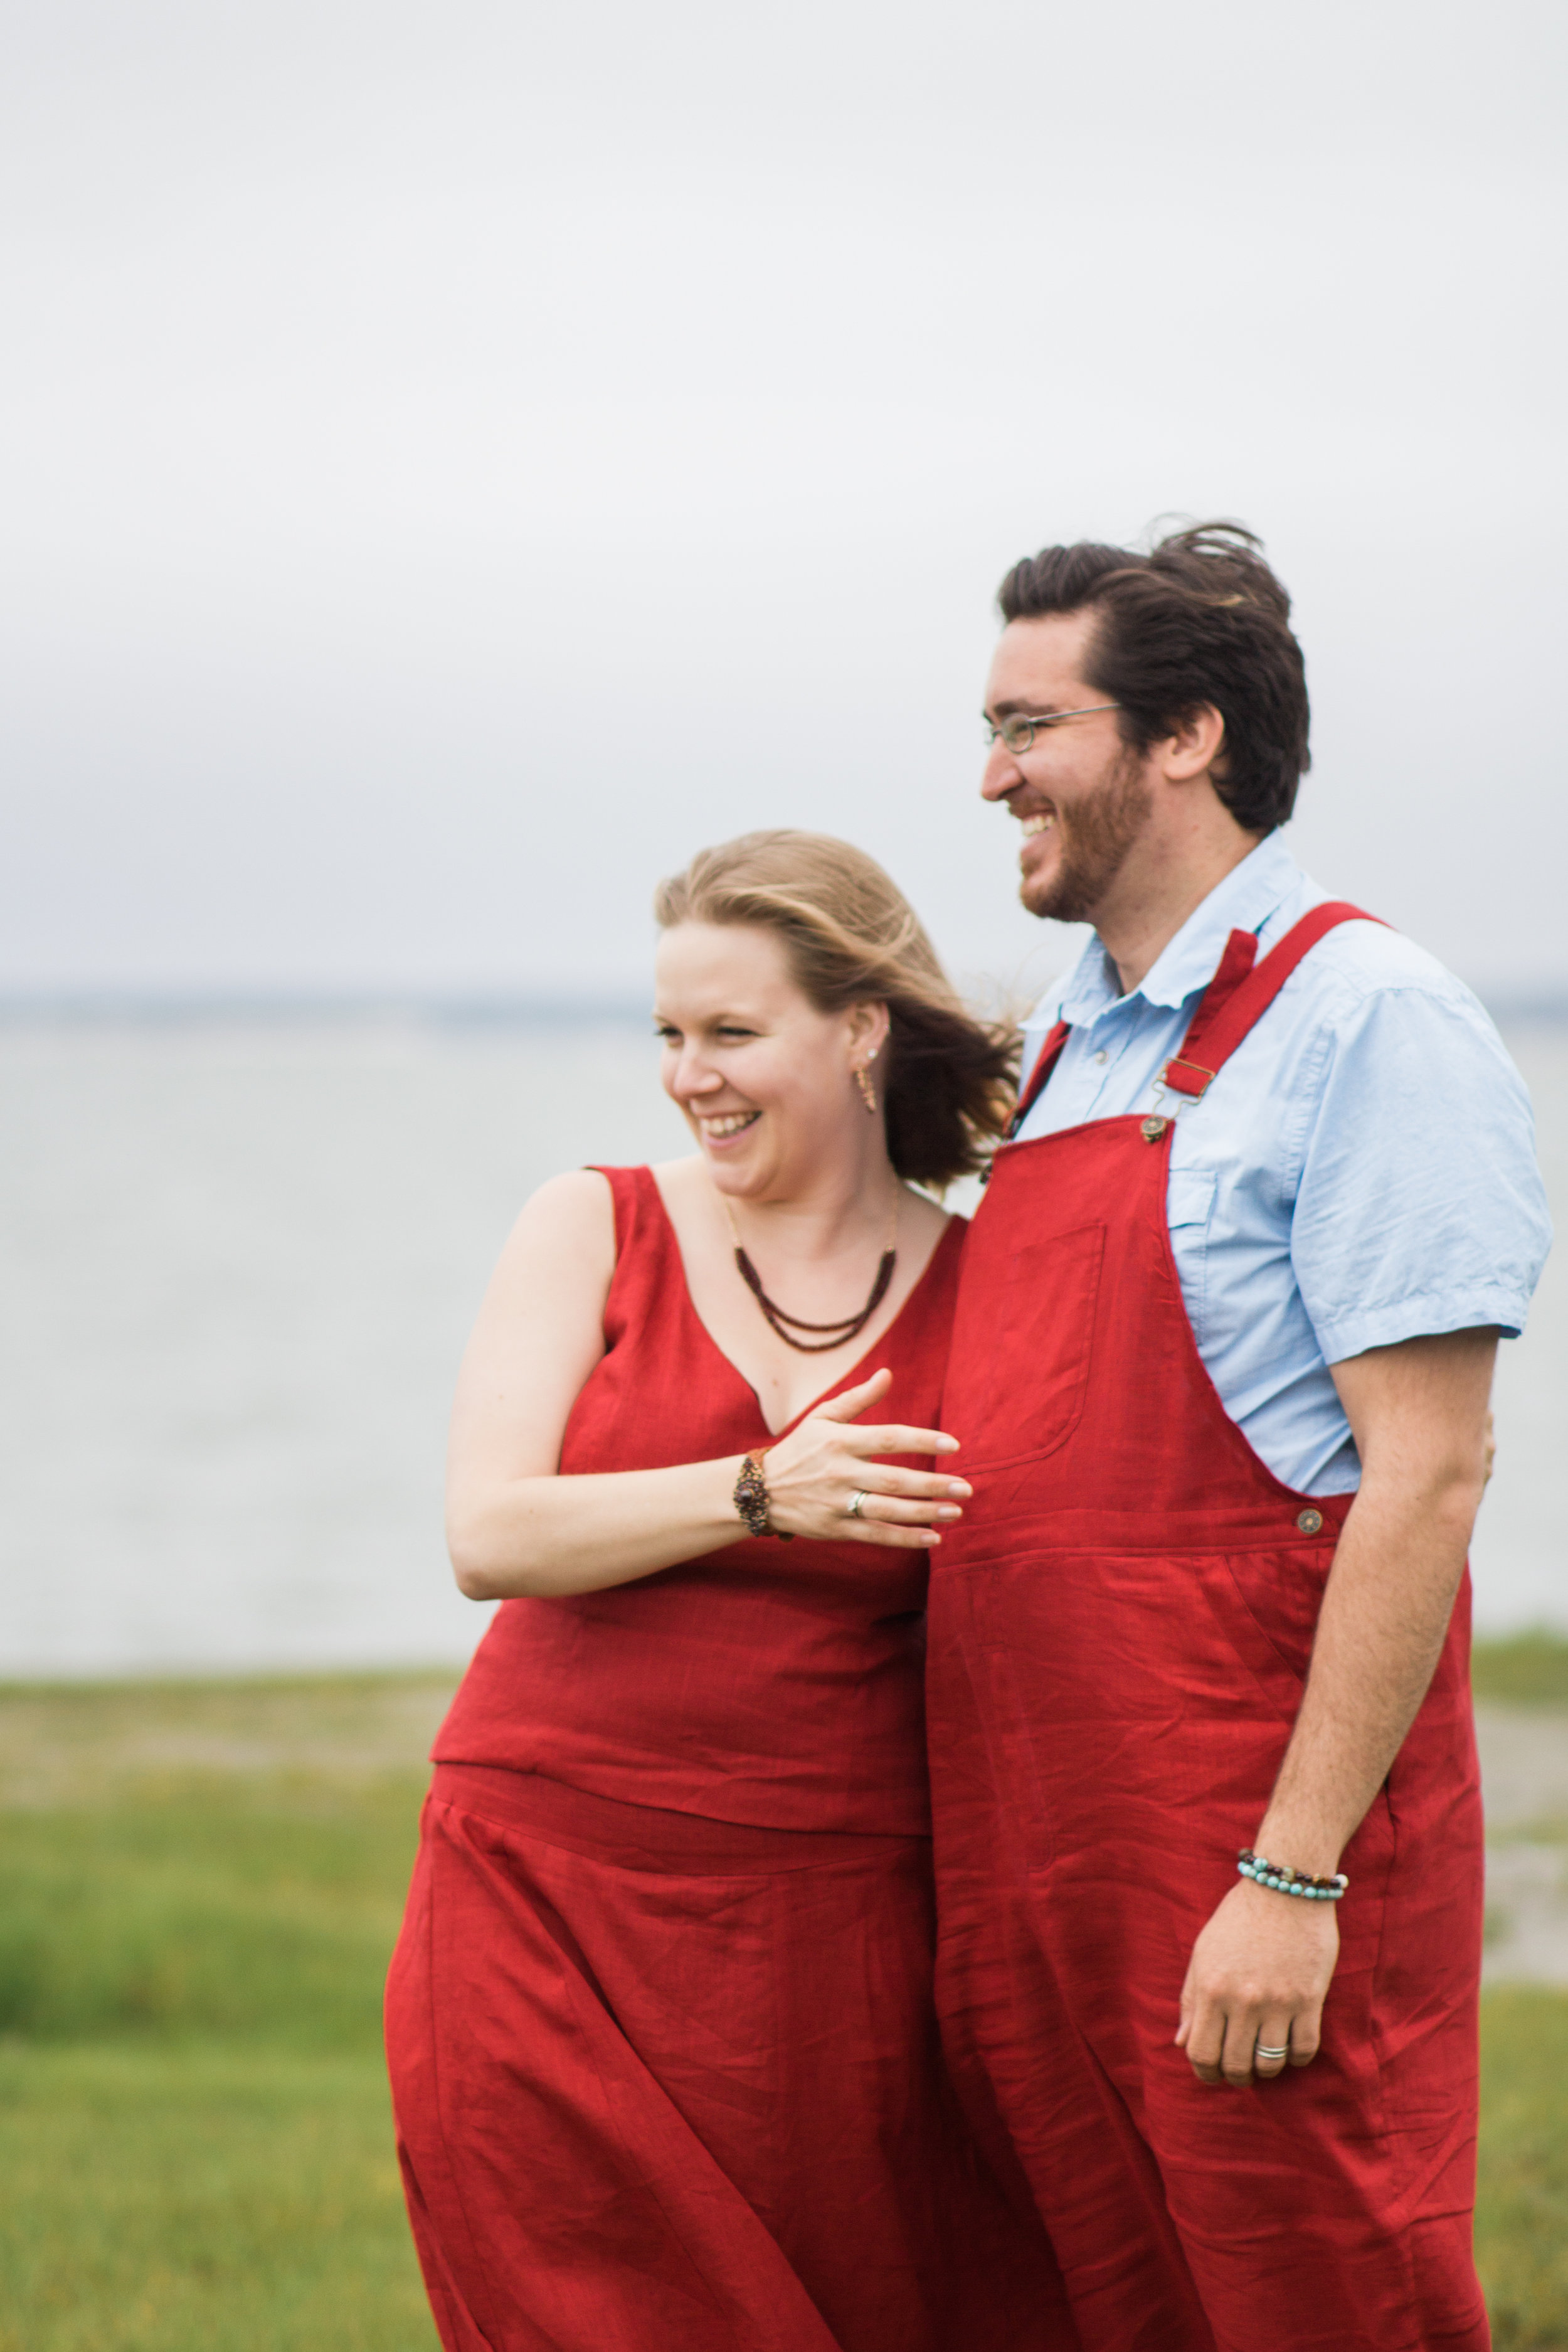 Claire and Ben-92.jpg